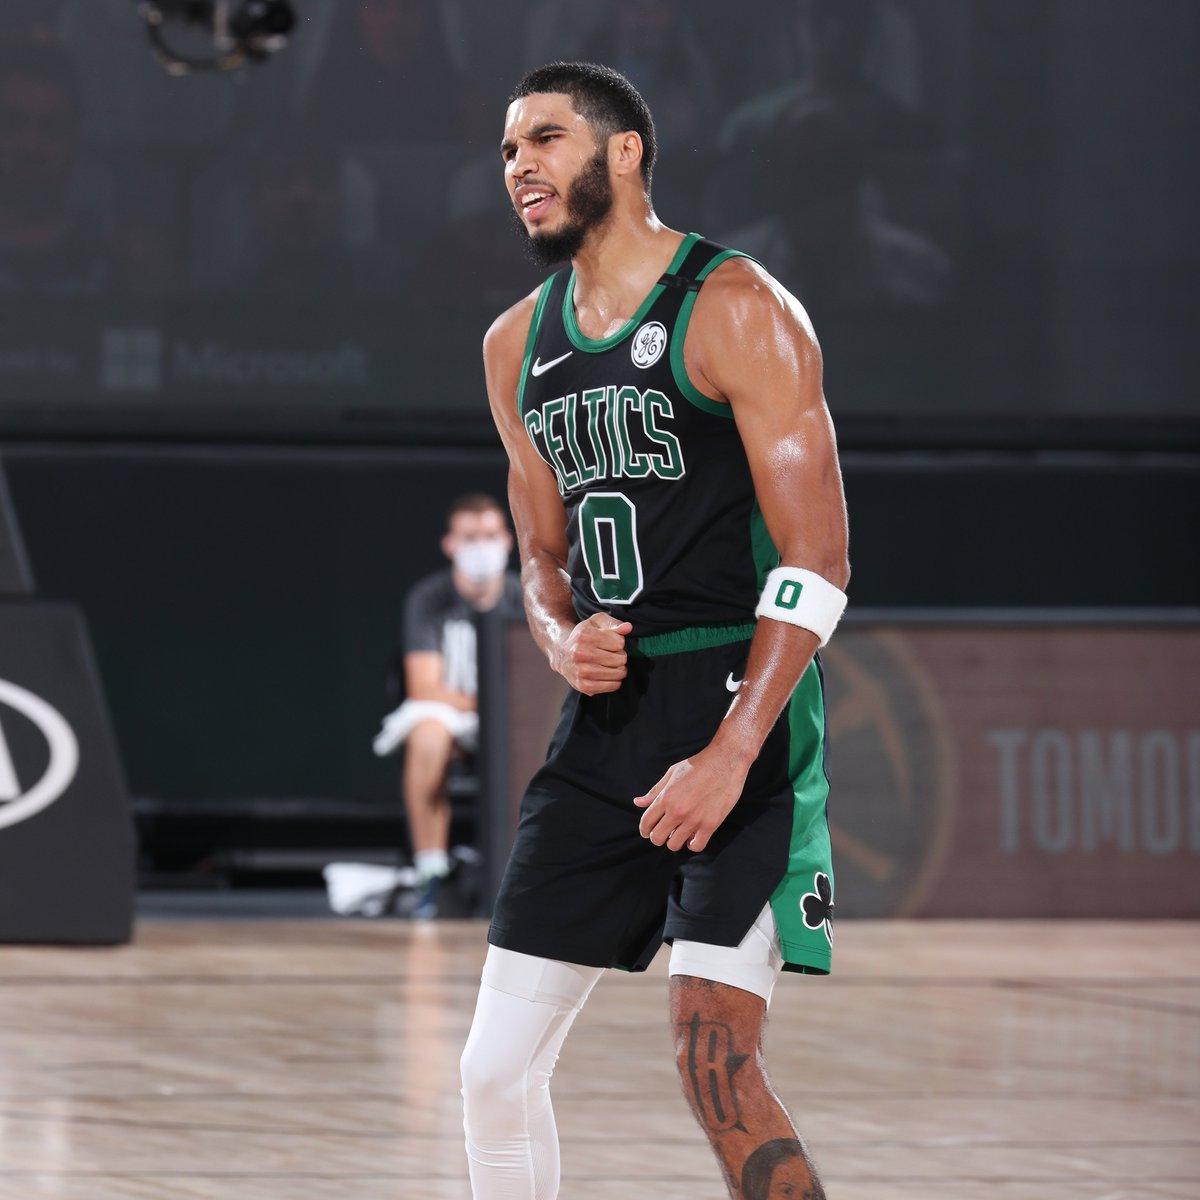 Jayson Tatum scored 31 points tonight, his 5th game with at least 30 this postseason. That is the most 30-point games in a postseason by a @celtics player since Kevin McHale had 5 such games in 1987-88. https://t.co/1x9qUtYLQD